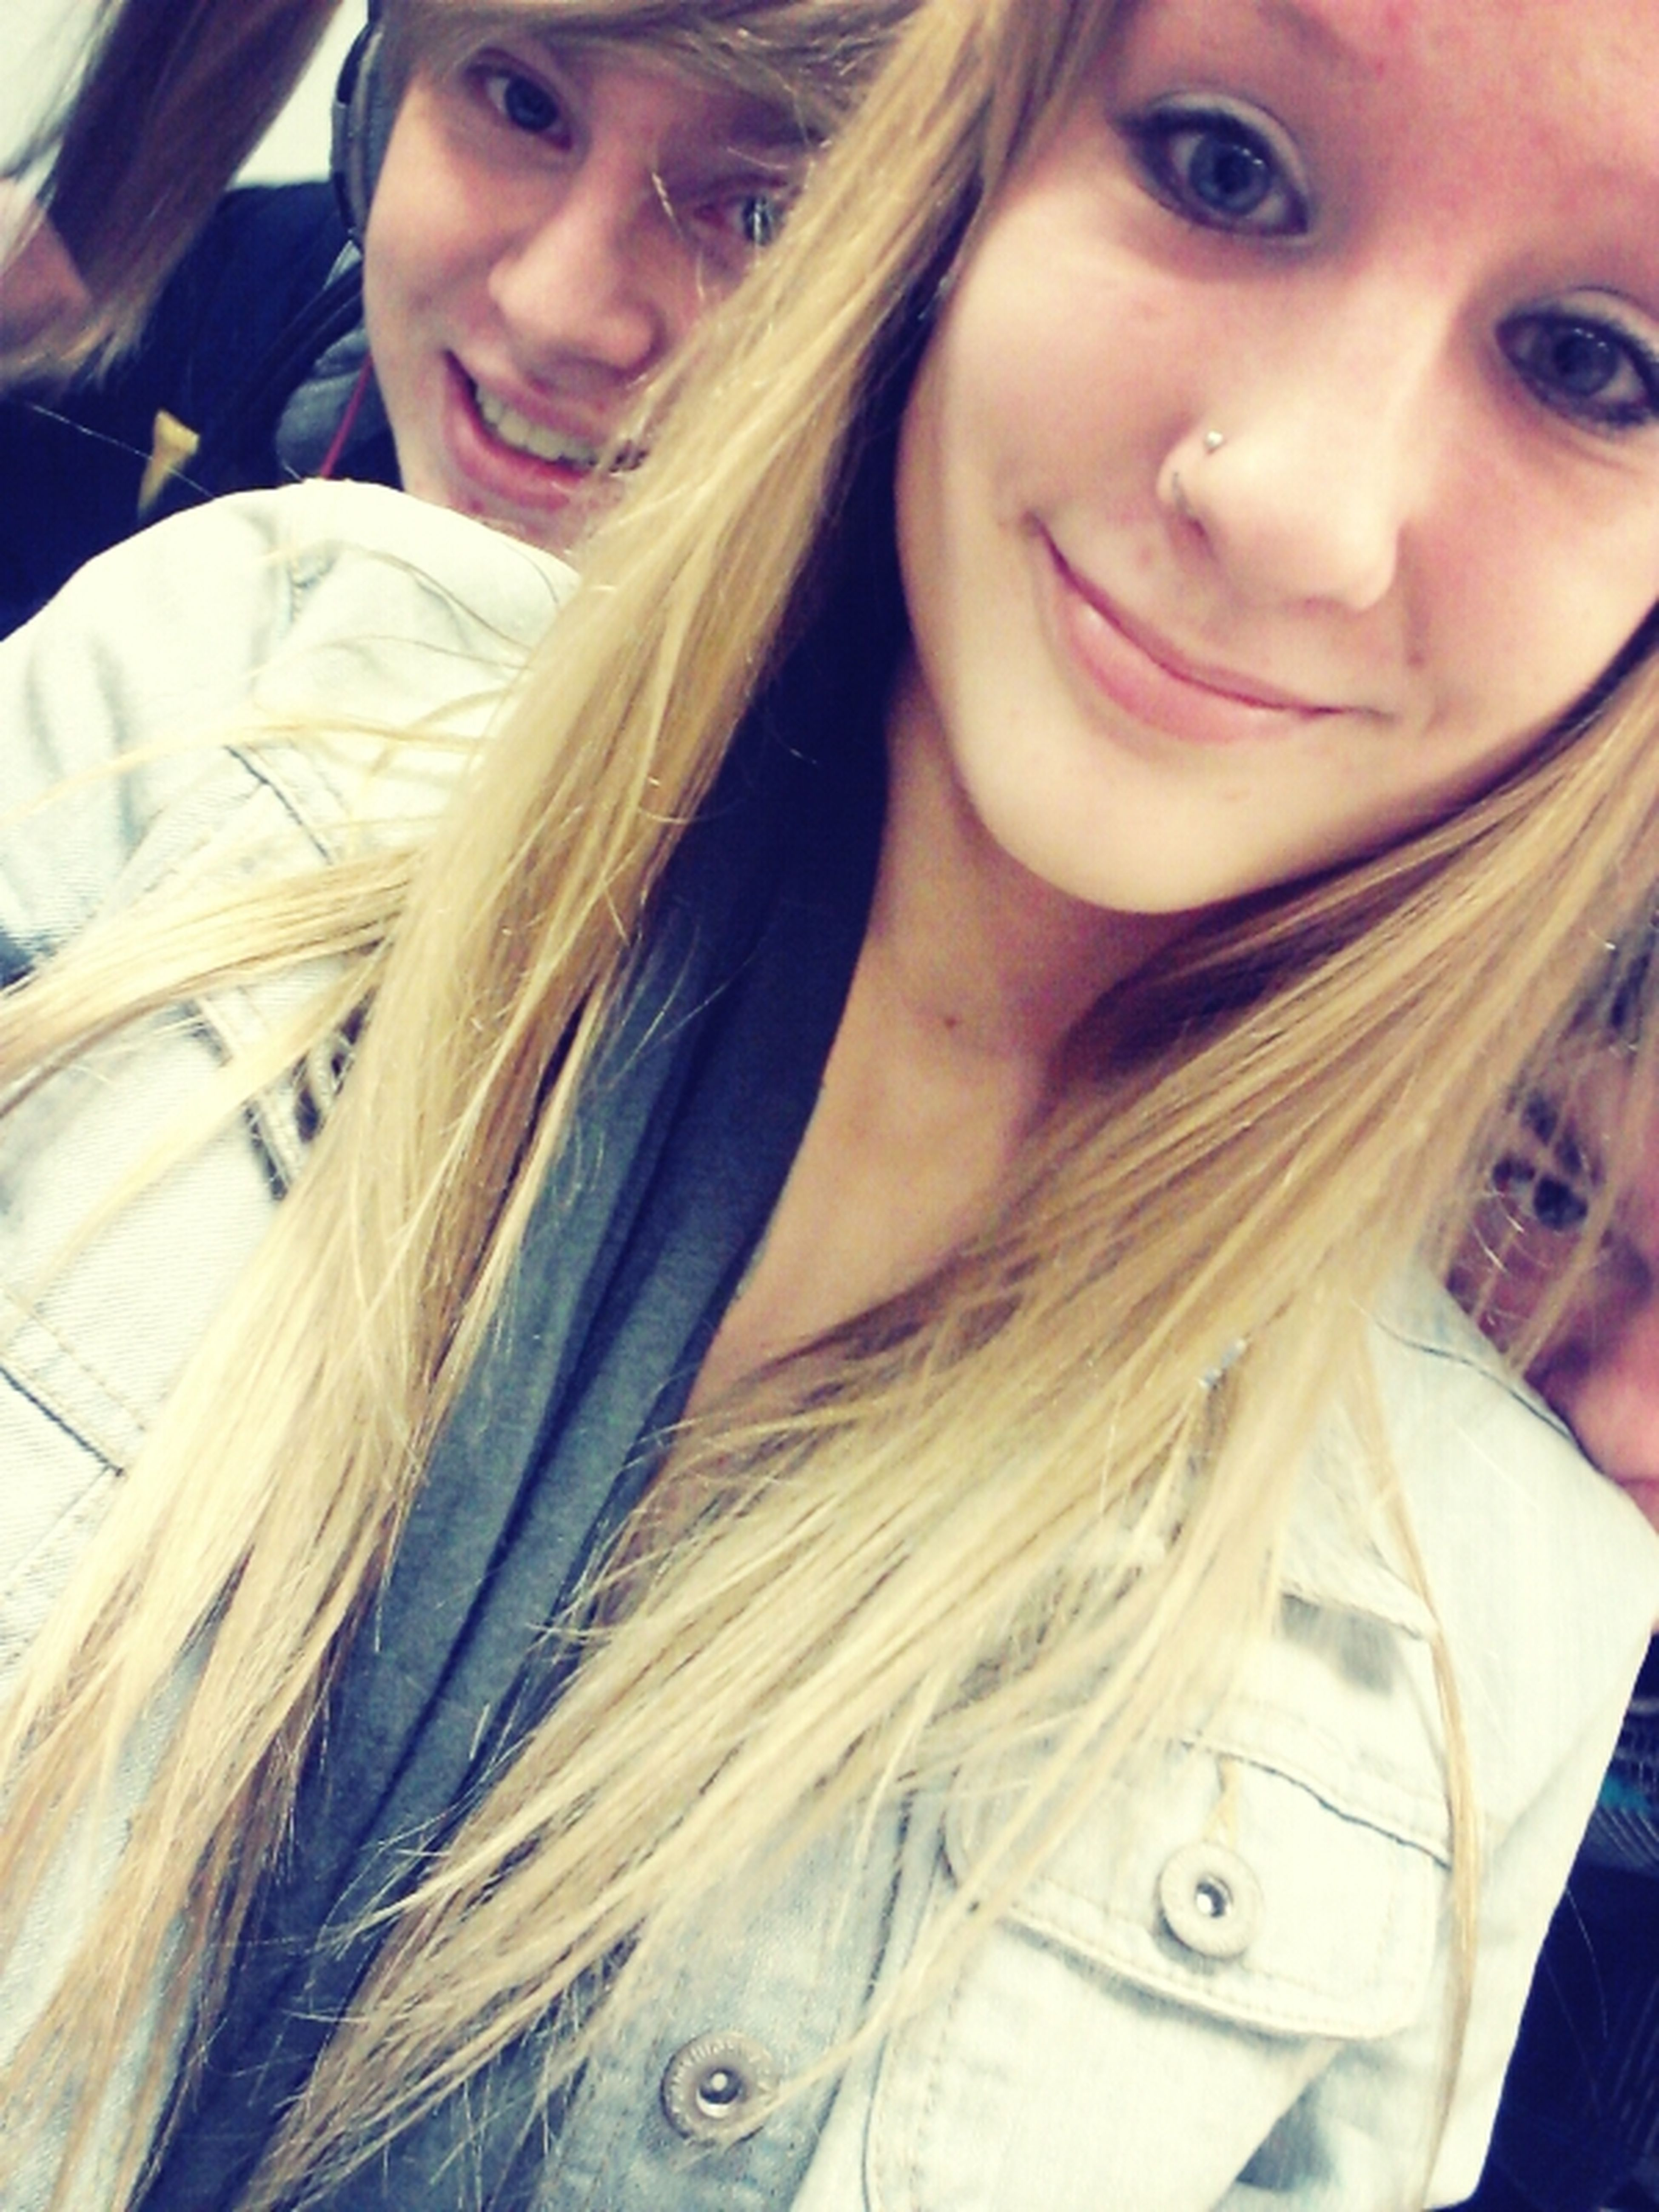 2 of my good guy friends creeping in the corners of my pic lol <3